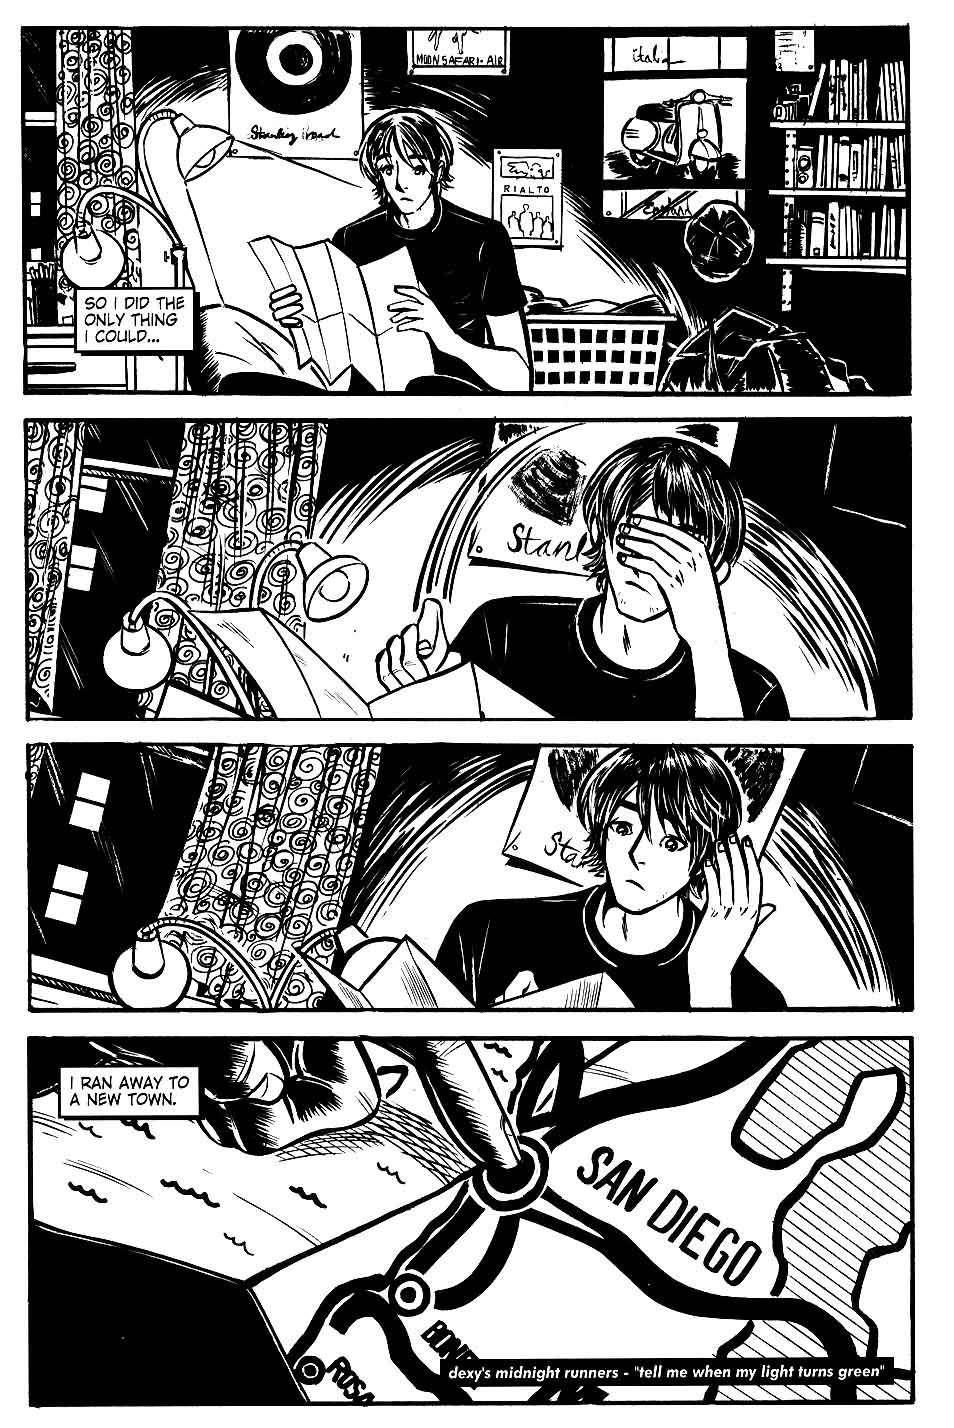 Read online Scooter Girl comic -  Issue #1 - 30